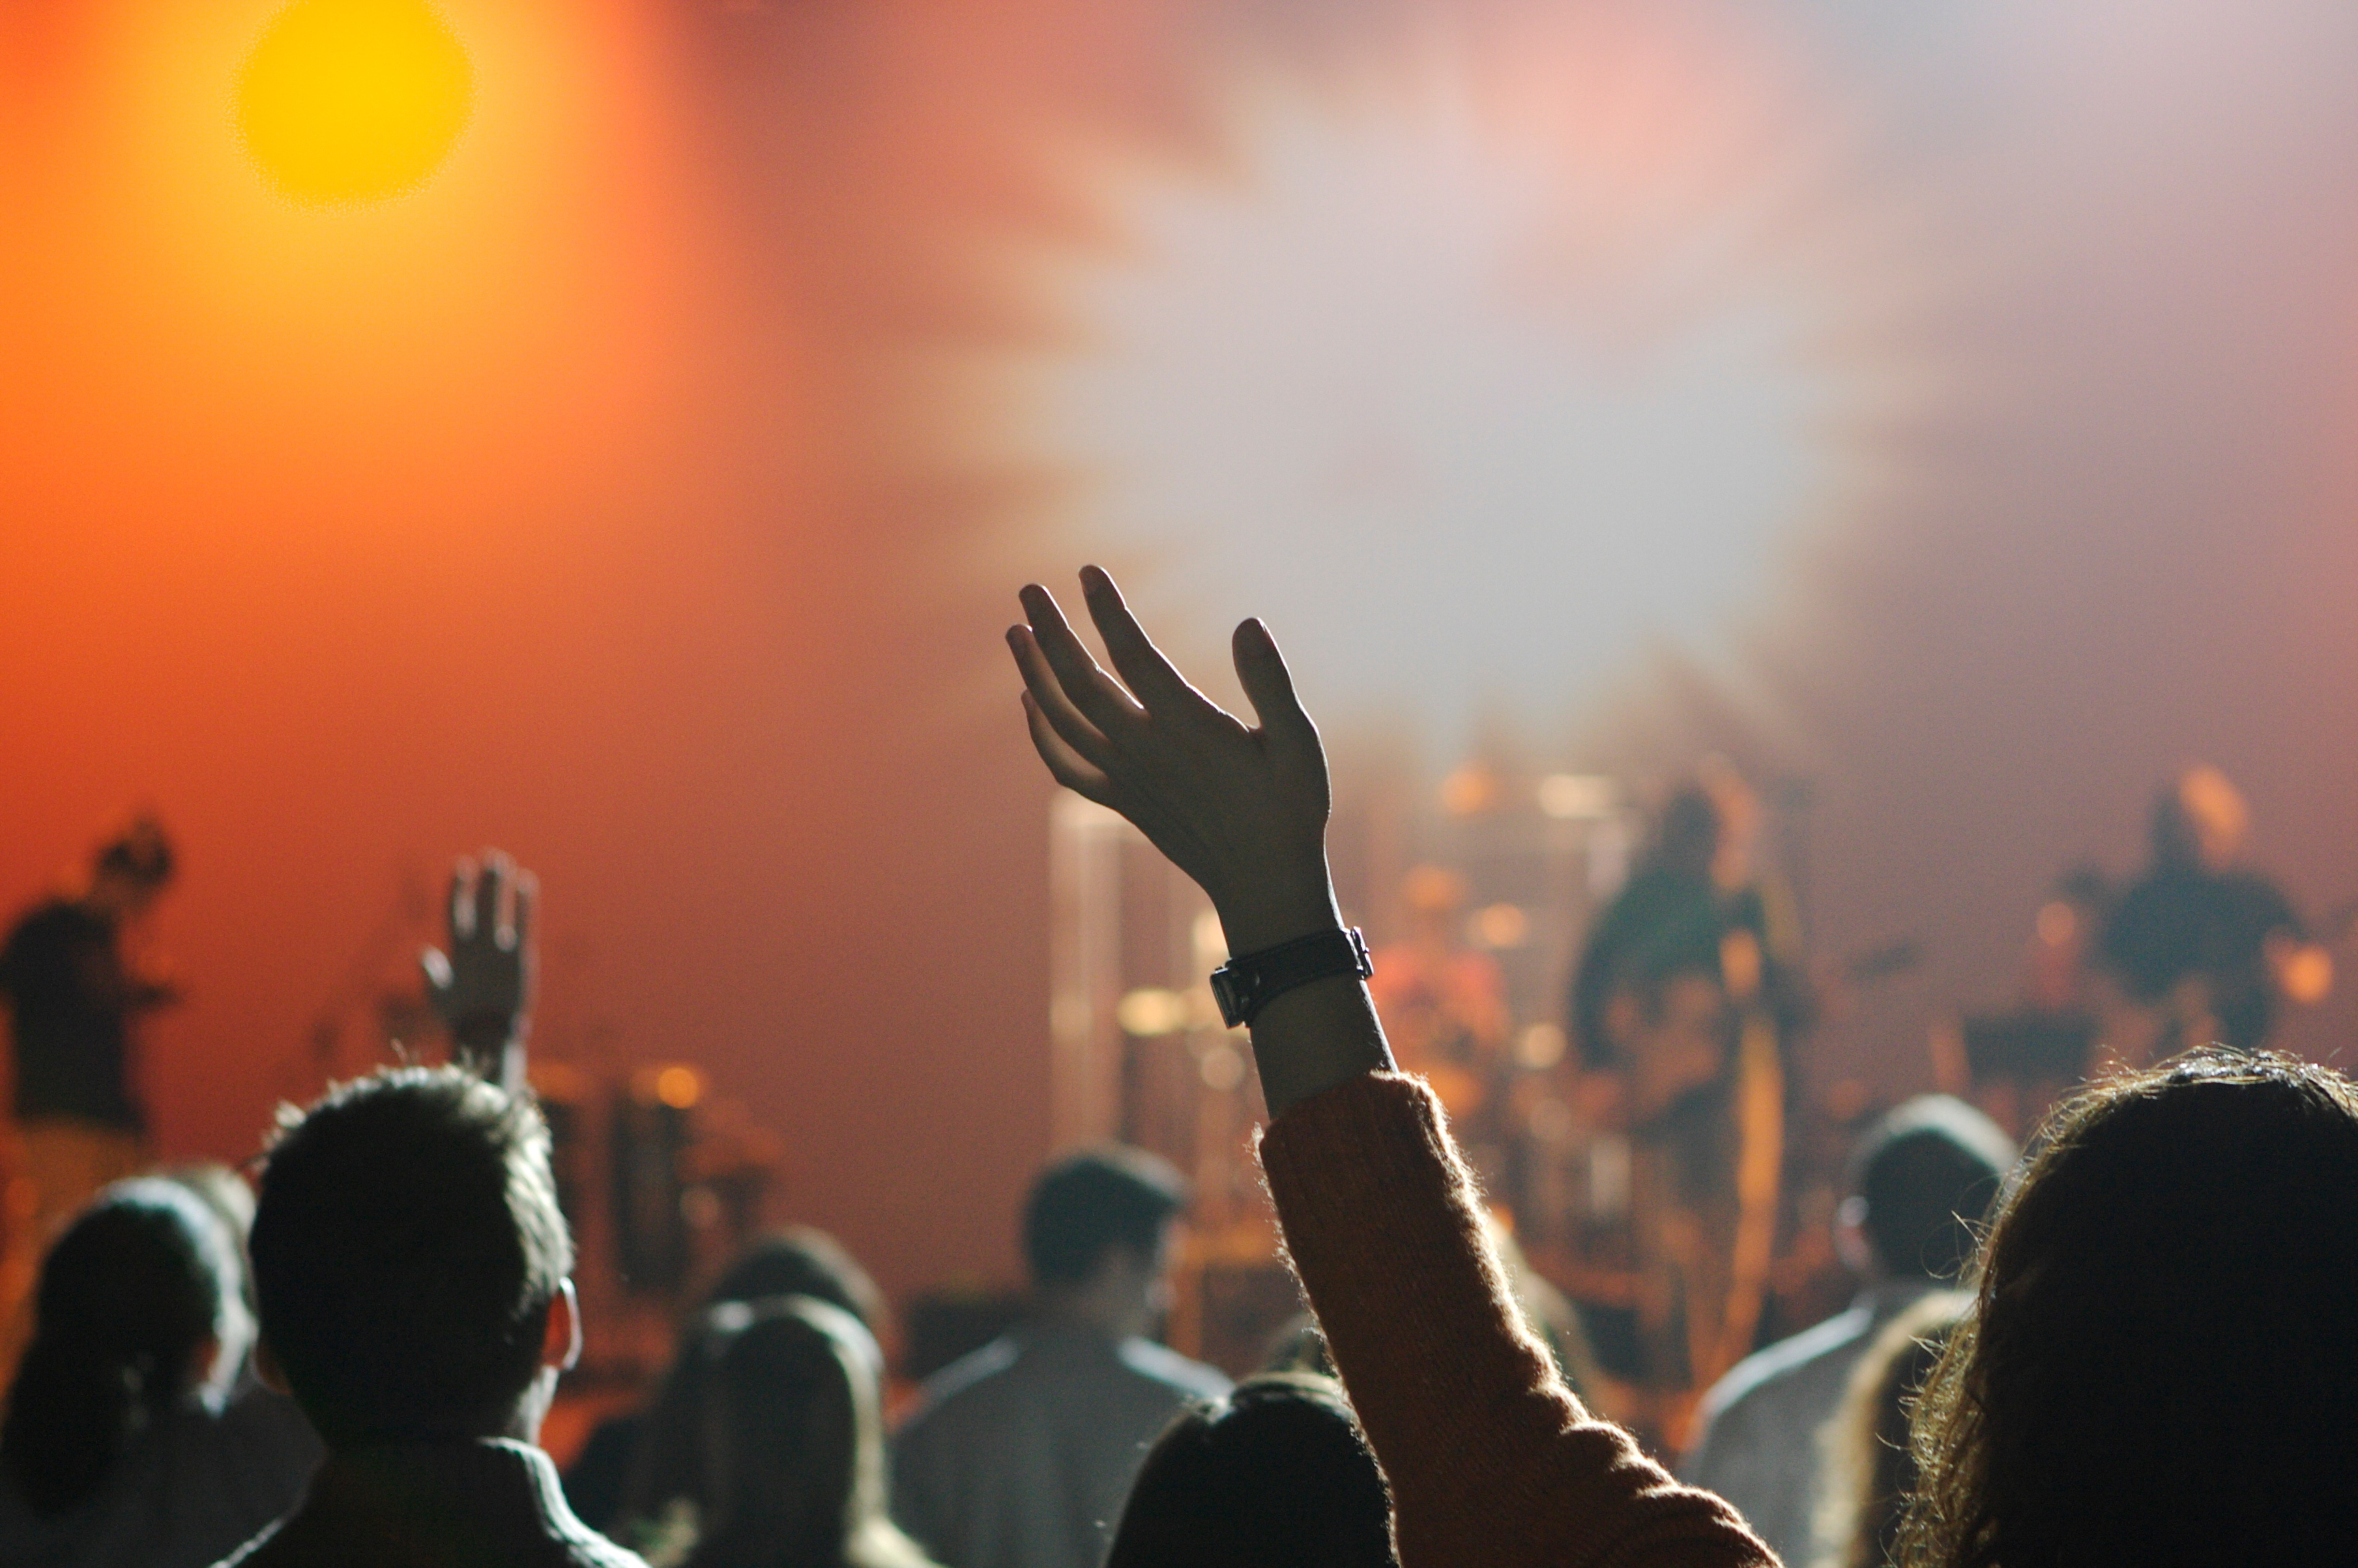 concert crowd with fan with raised hand and band in background